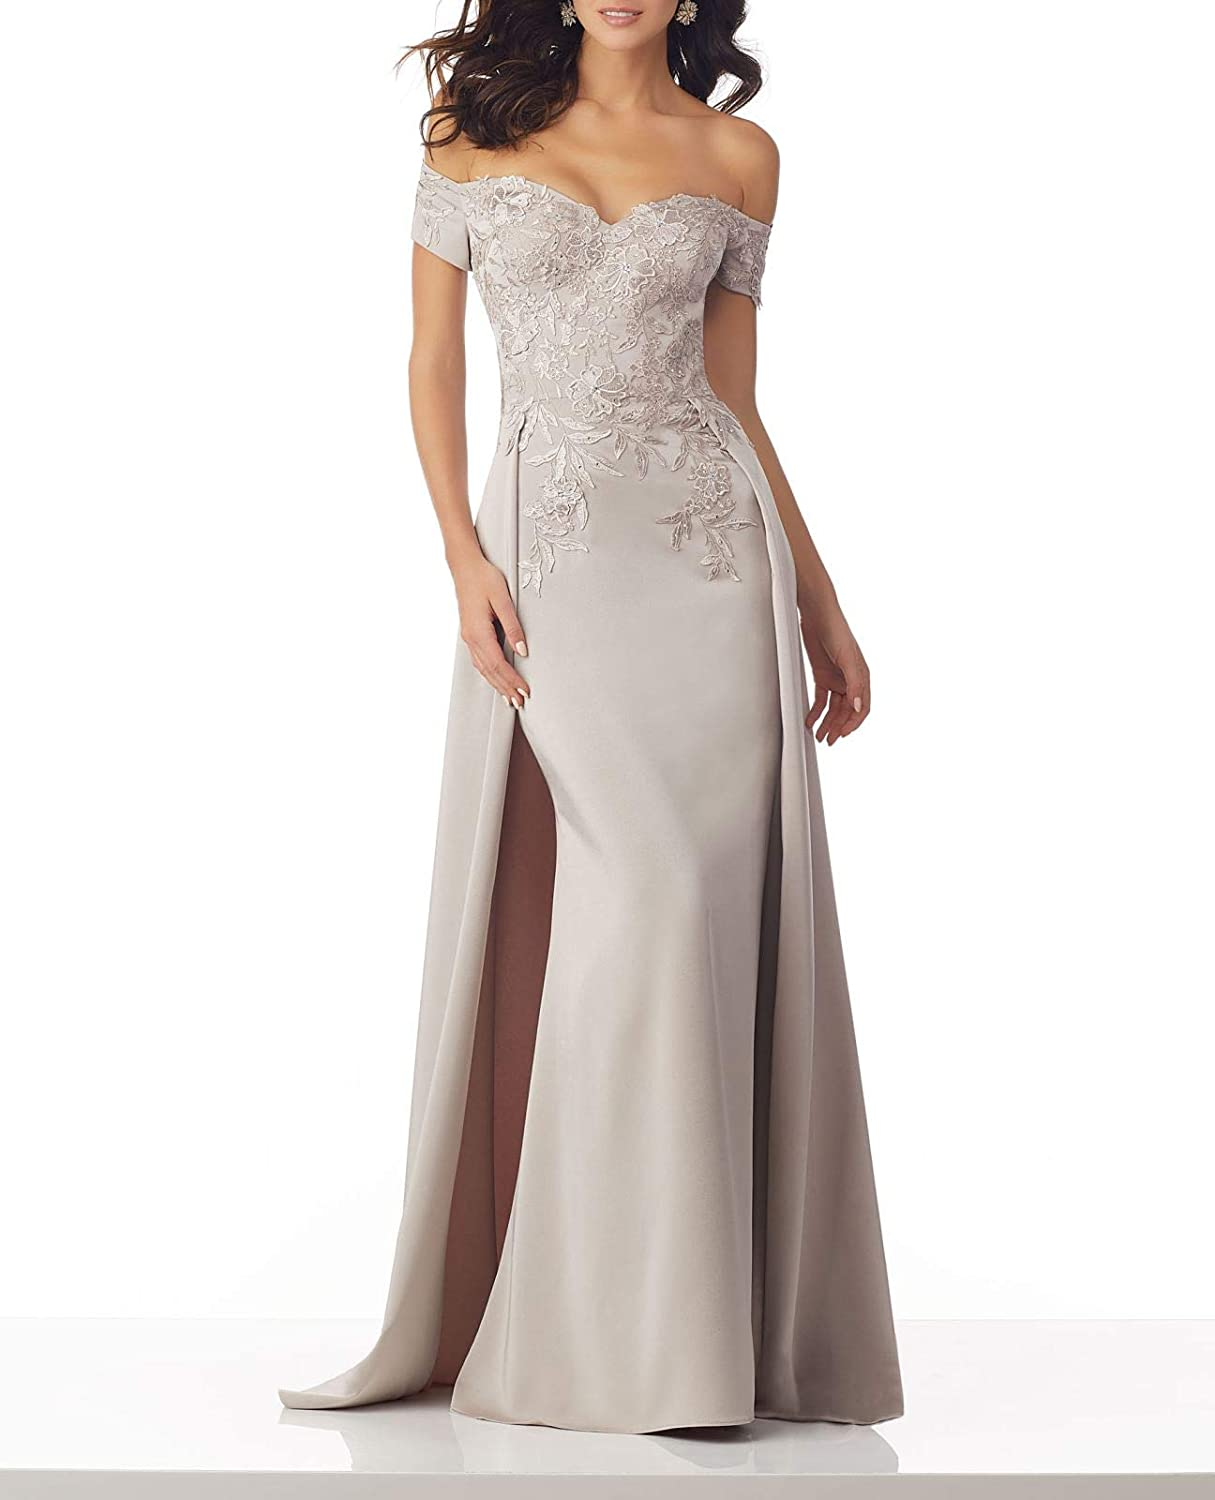 Beige Wanshaqin Women's Off The Shoulder Sweetheart Evening Gown Formal Wedding Party Dress for Brides with Cloak Back Tail